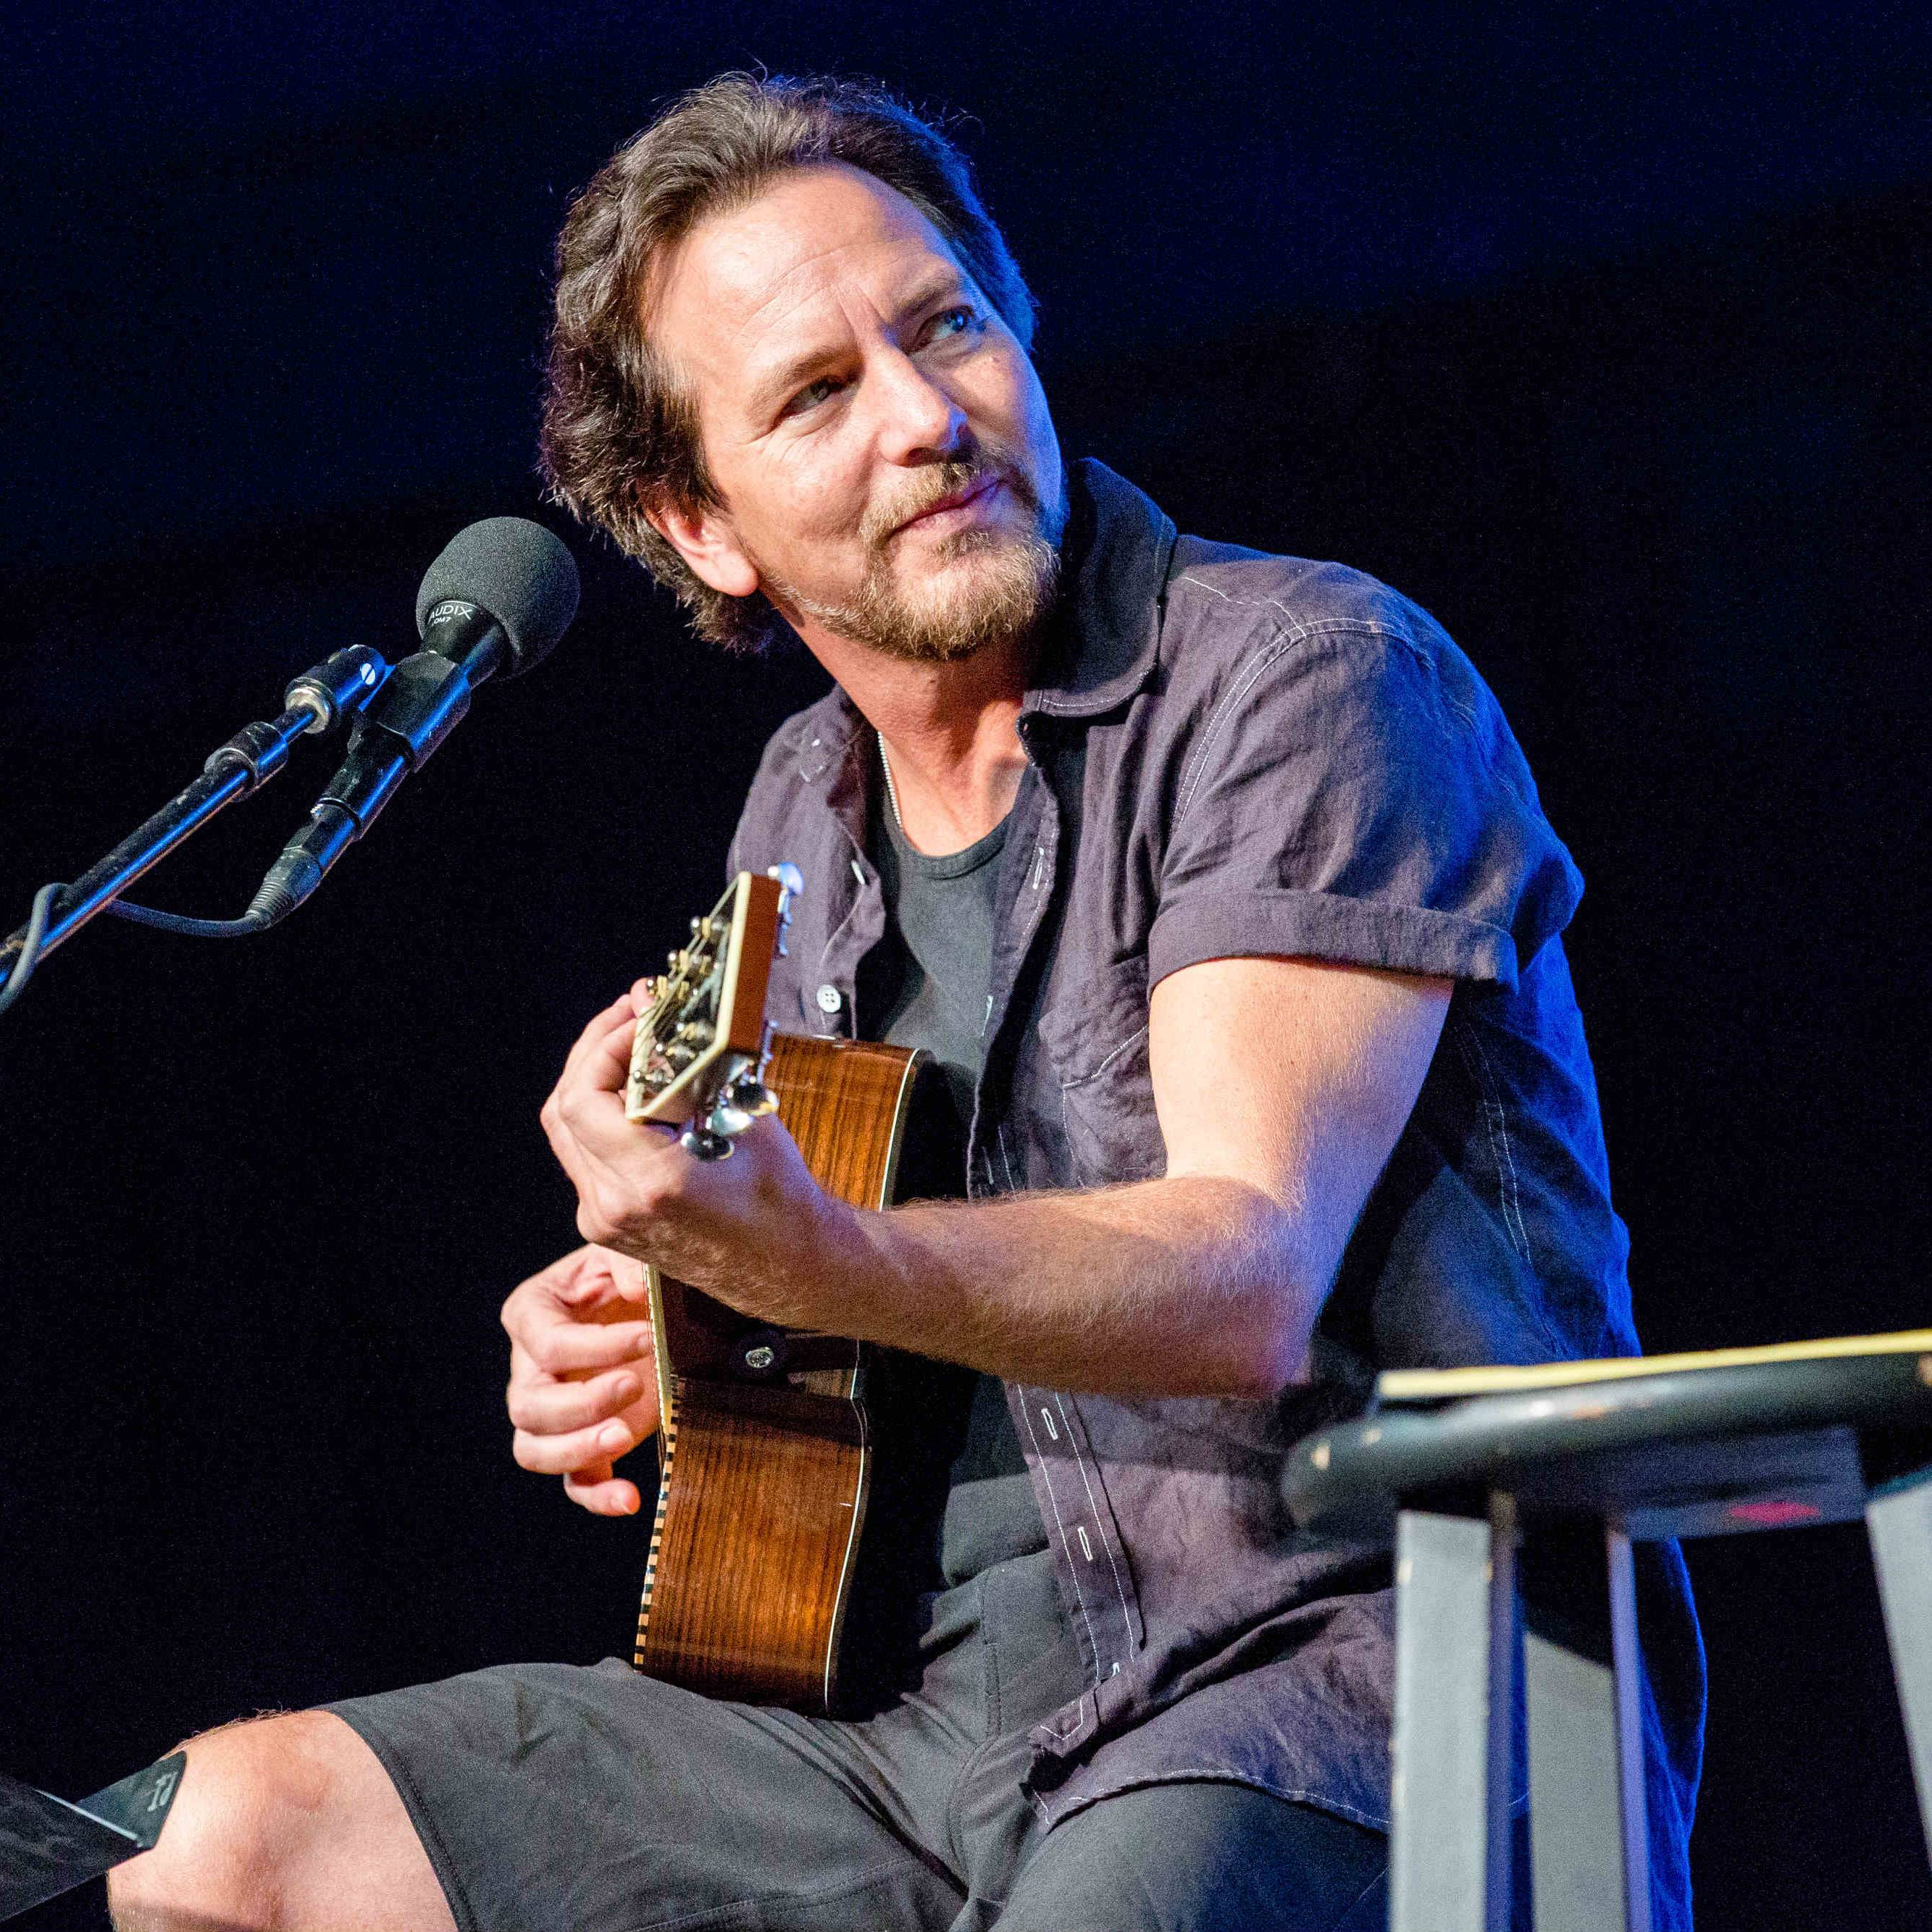 Eddie Vedder Got All Of Bonnaroo To Wish His Daughter A